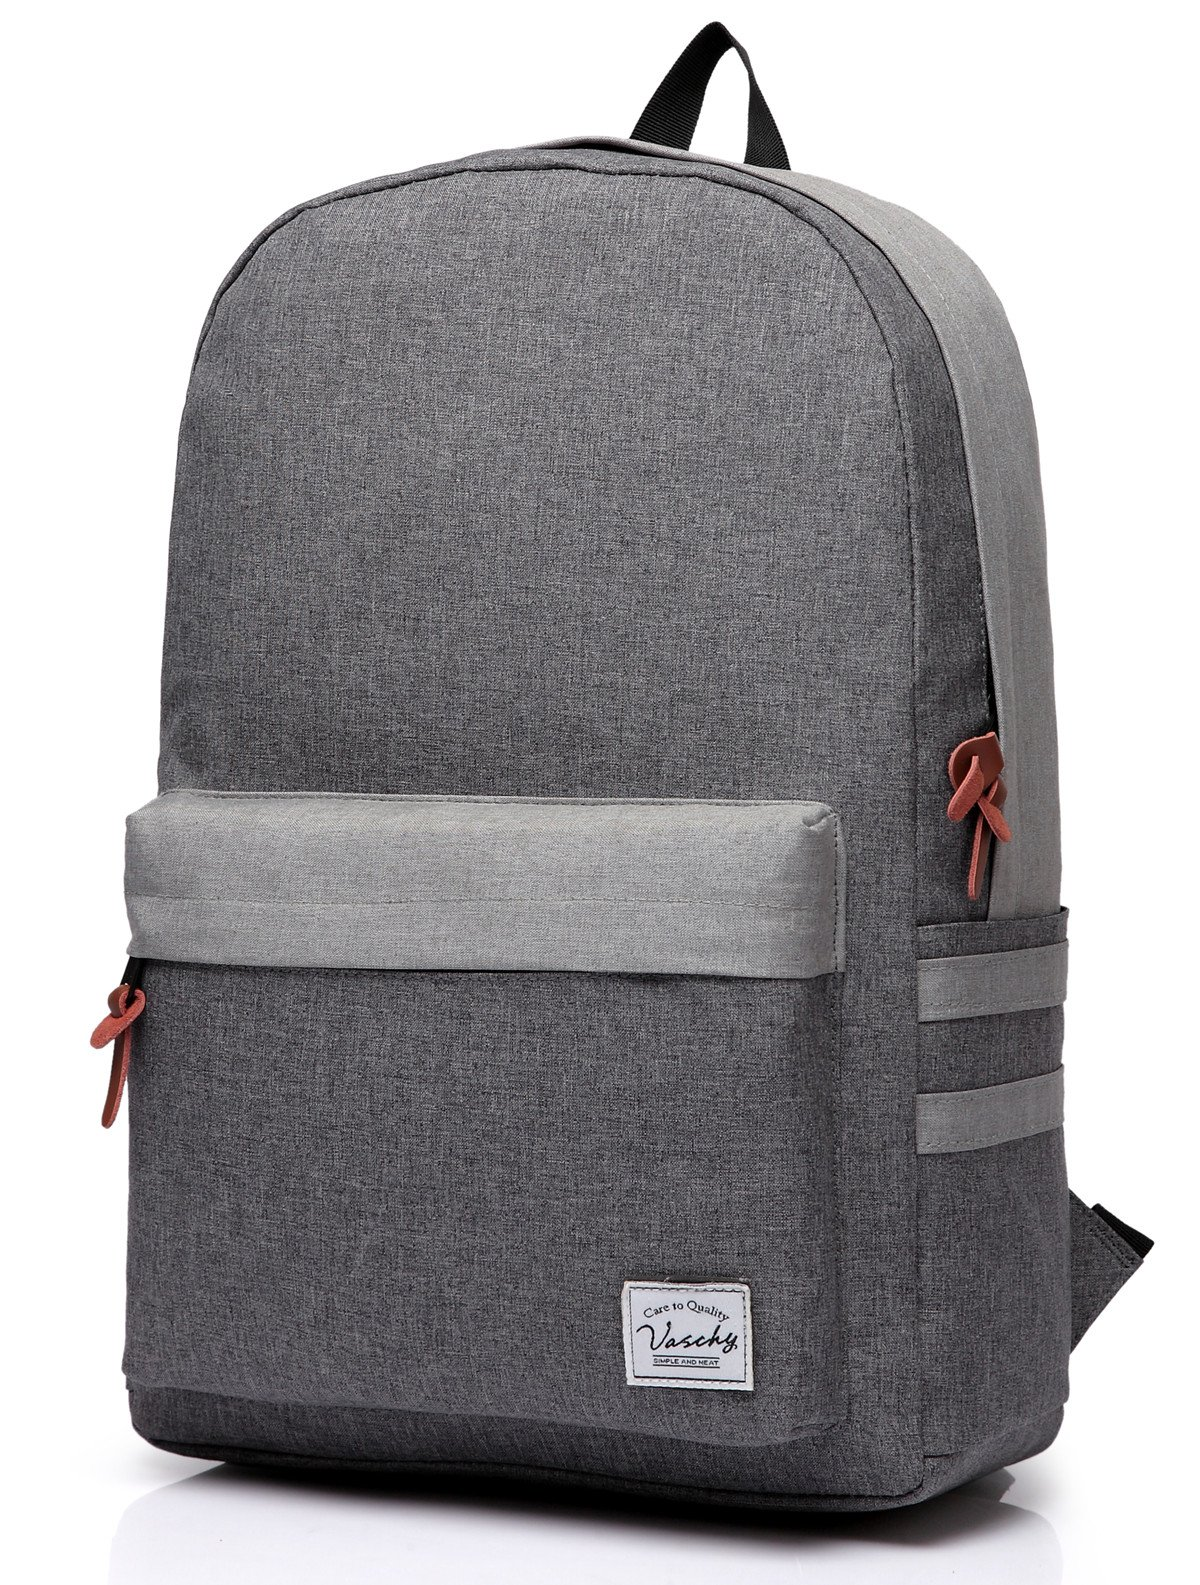 Laptop Backpack, Water Resistant High School Backpack in Gray by Vaschy fits up to 15 Inch Laptop by VASCHY